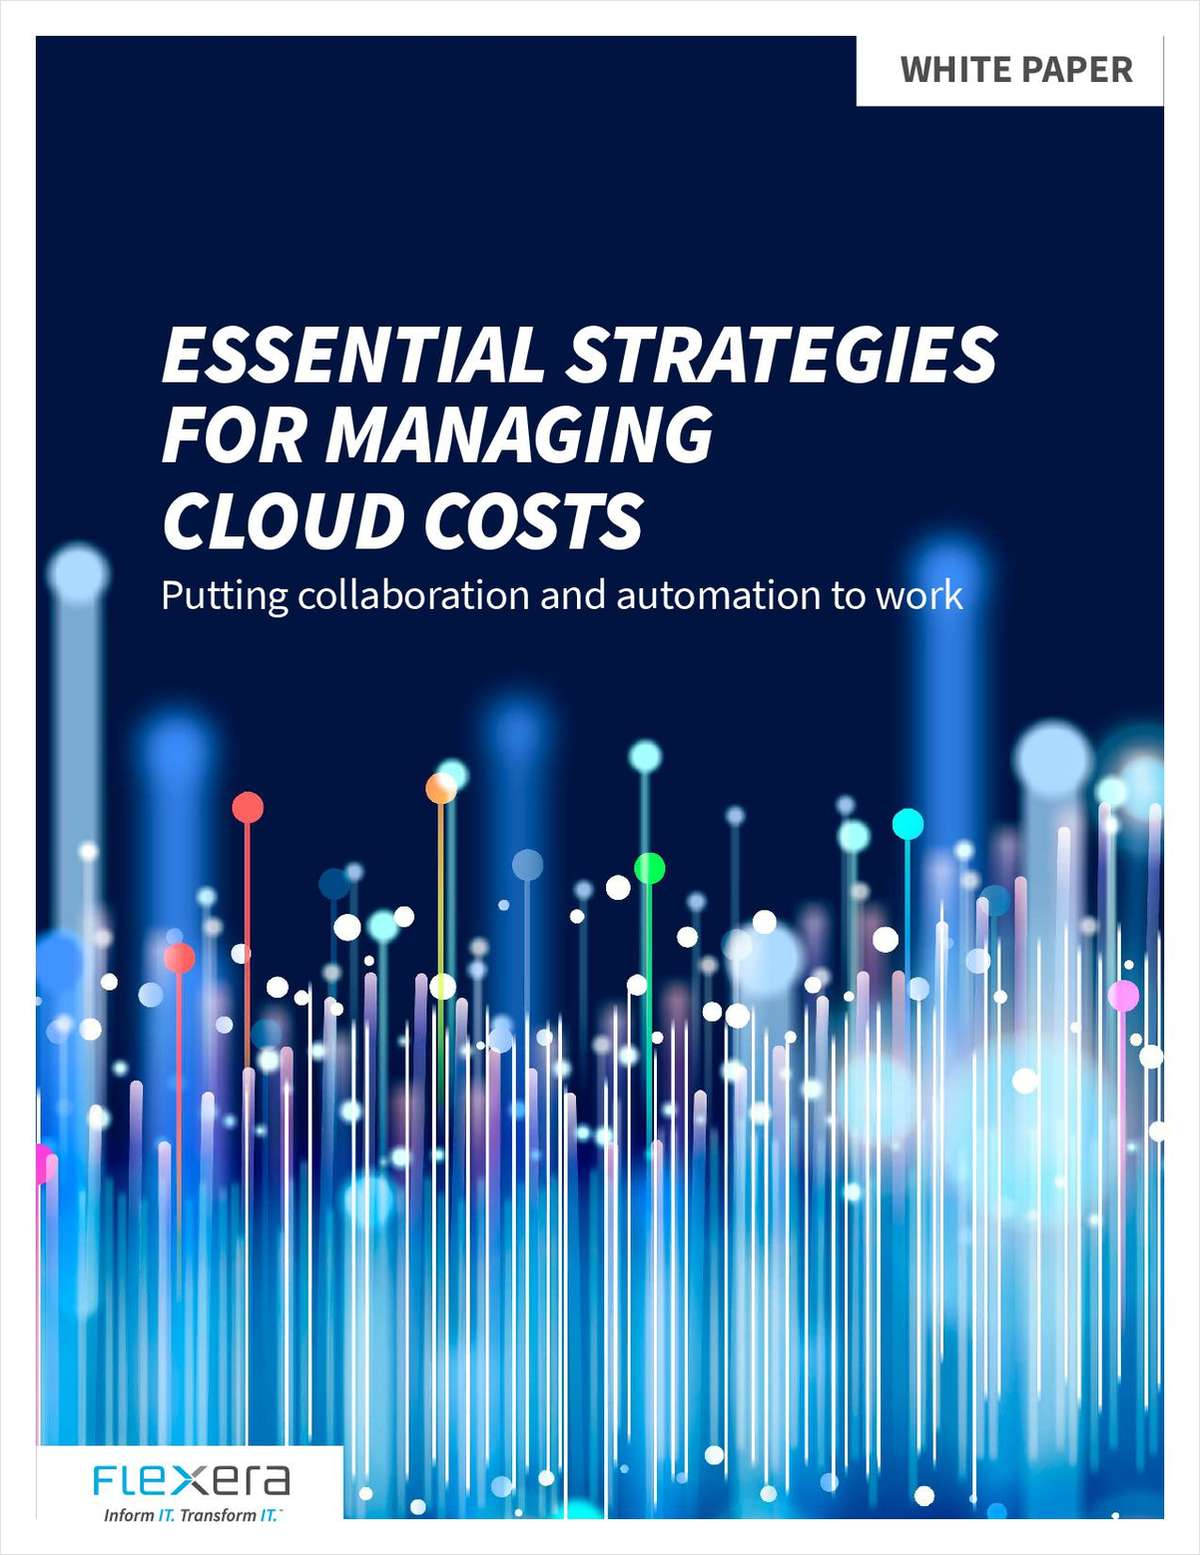 ESSENTIAL STRATEGIES FOR MANAGING CLOUD COSTS